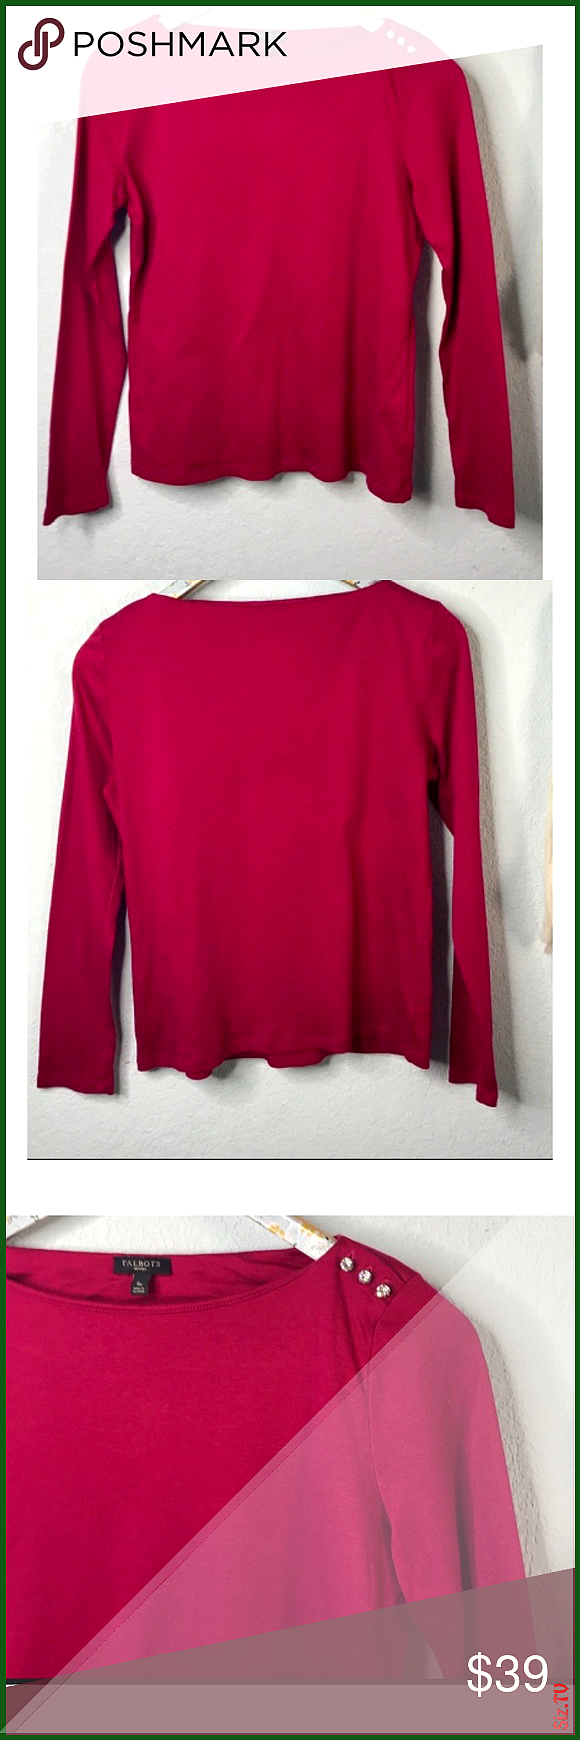 HOT PINK SWEATER W A TRIO OF RHINESTONES  This Hot Pink Sweater has a Trio of Rhinestones and is definitely a pick of one of my favorites It s Larg  HOT PINK SWEATER W A TRIO OF RHINESTONES  This Hot Pink Sweater has a Trio of Rhinestones and is definitely nbsp  hellip   #FAVORITES #hot #Larg #PICK #Pink #pink Sweater outfits #RHINESTONES #Sweater #TRIO